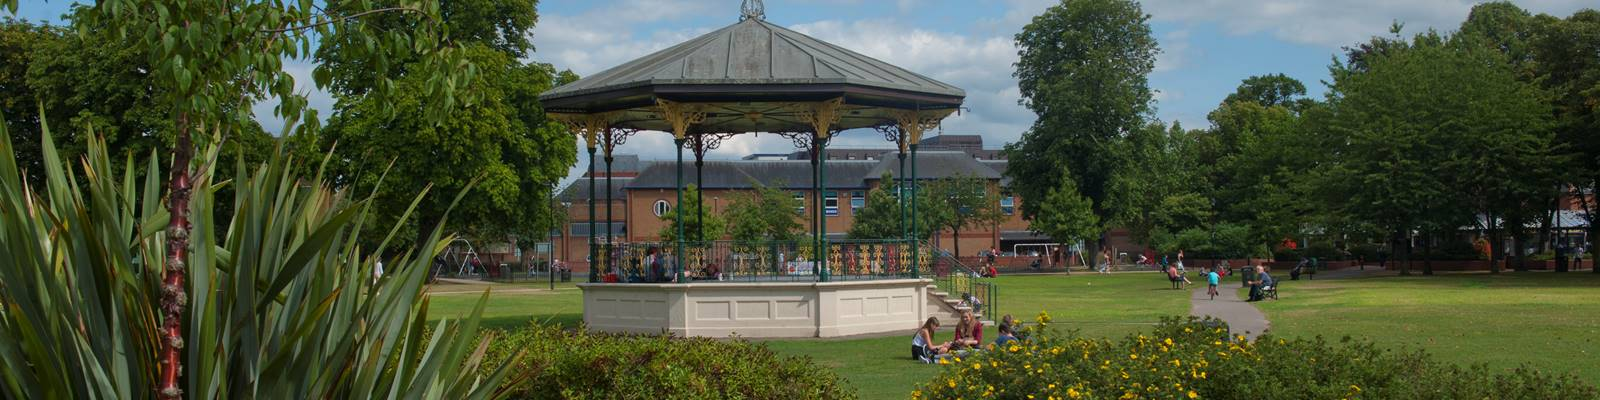 Bandstand_Eastleigh.jpg